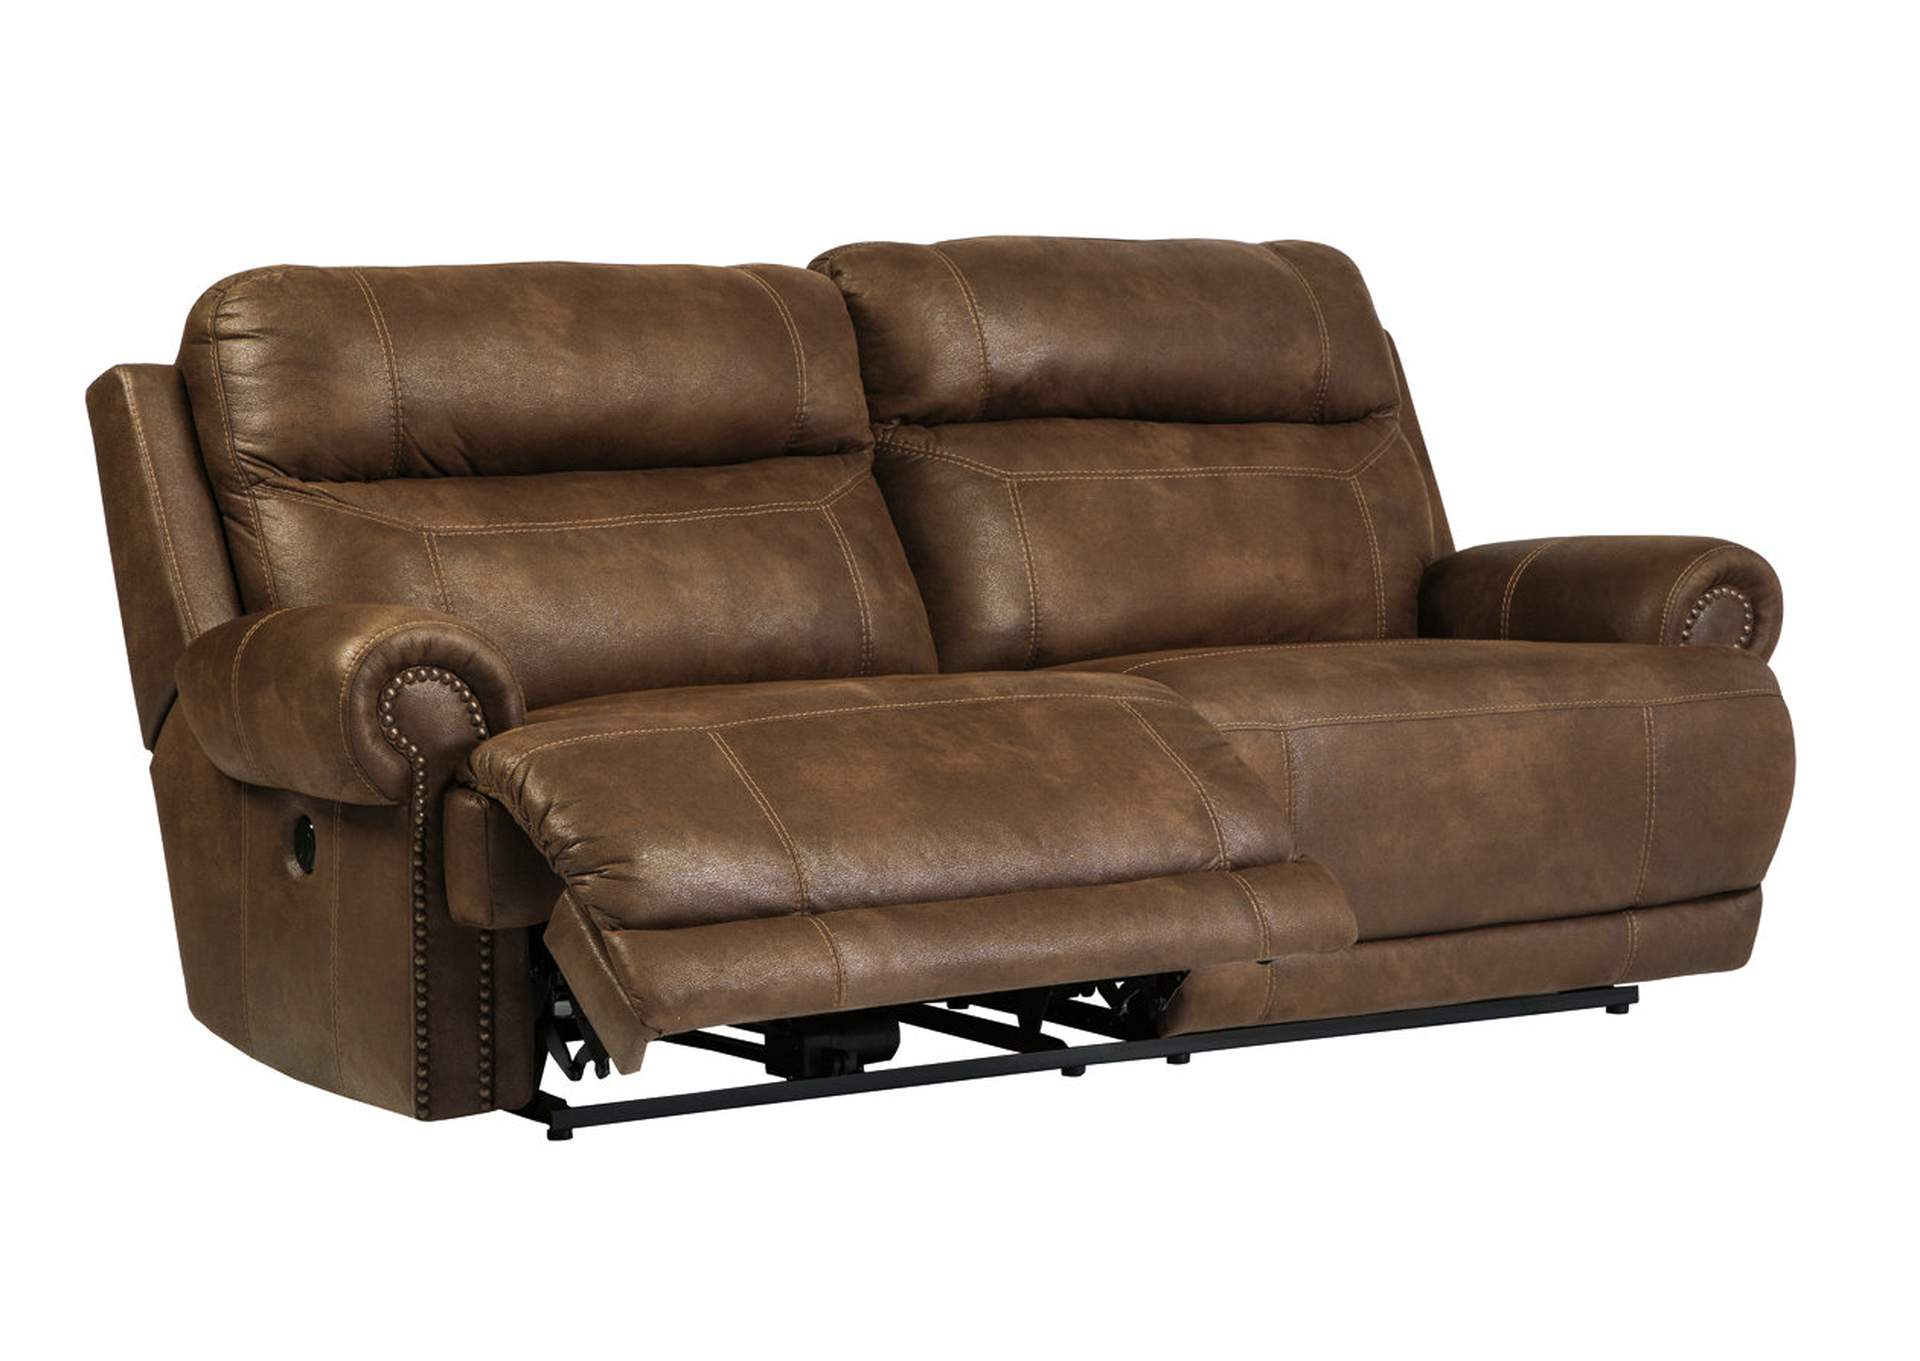 Harlem Furniture Austere Brown 2 Seat Reclining Power Sofa